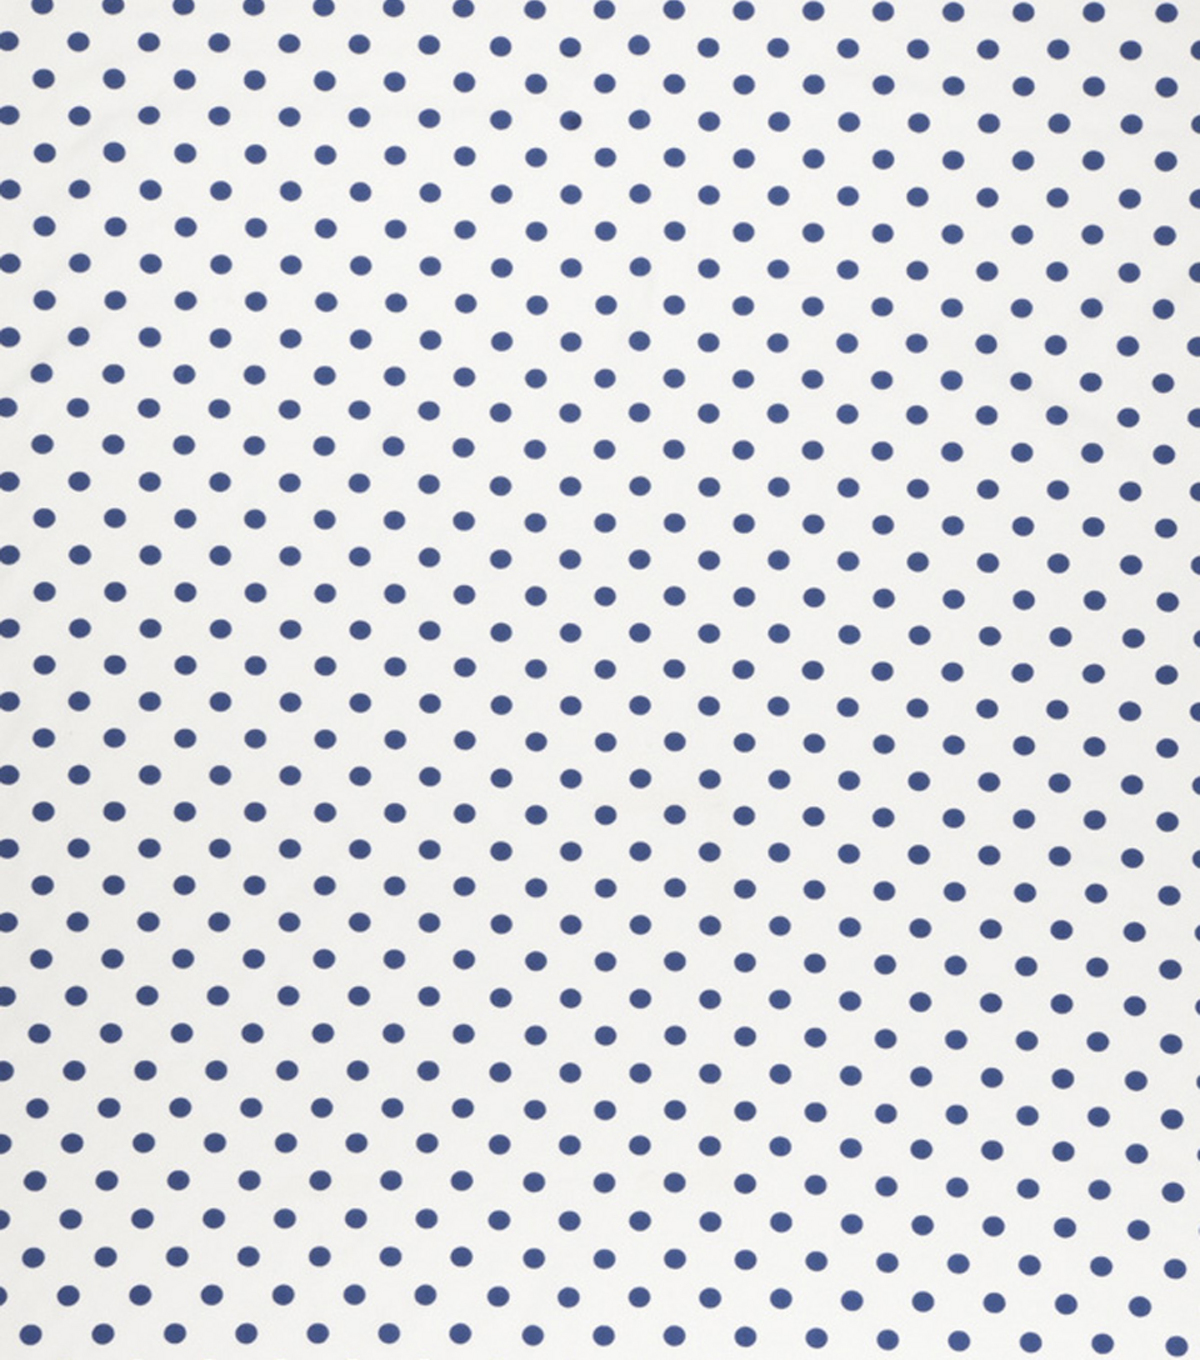 Home Decor 8\u0022x8\u0022 Fabric Swatch-Eaton Square Everglade Denim